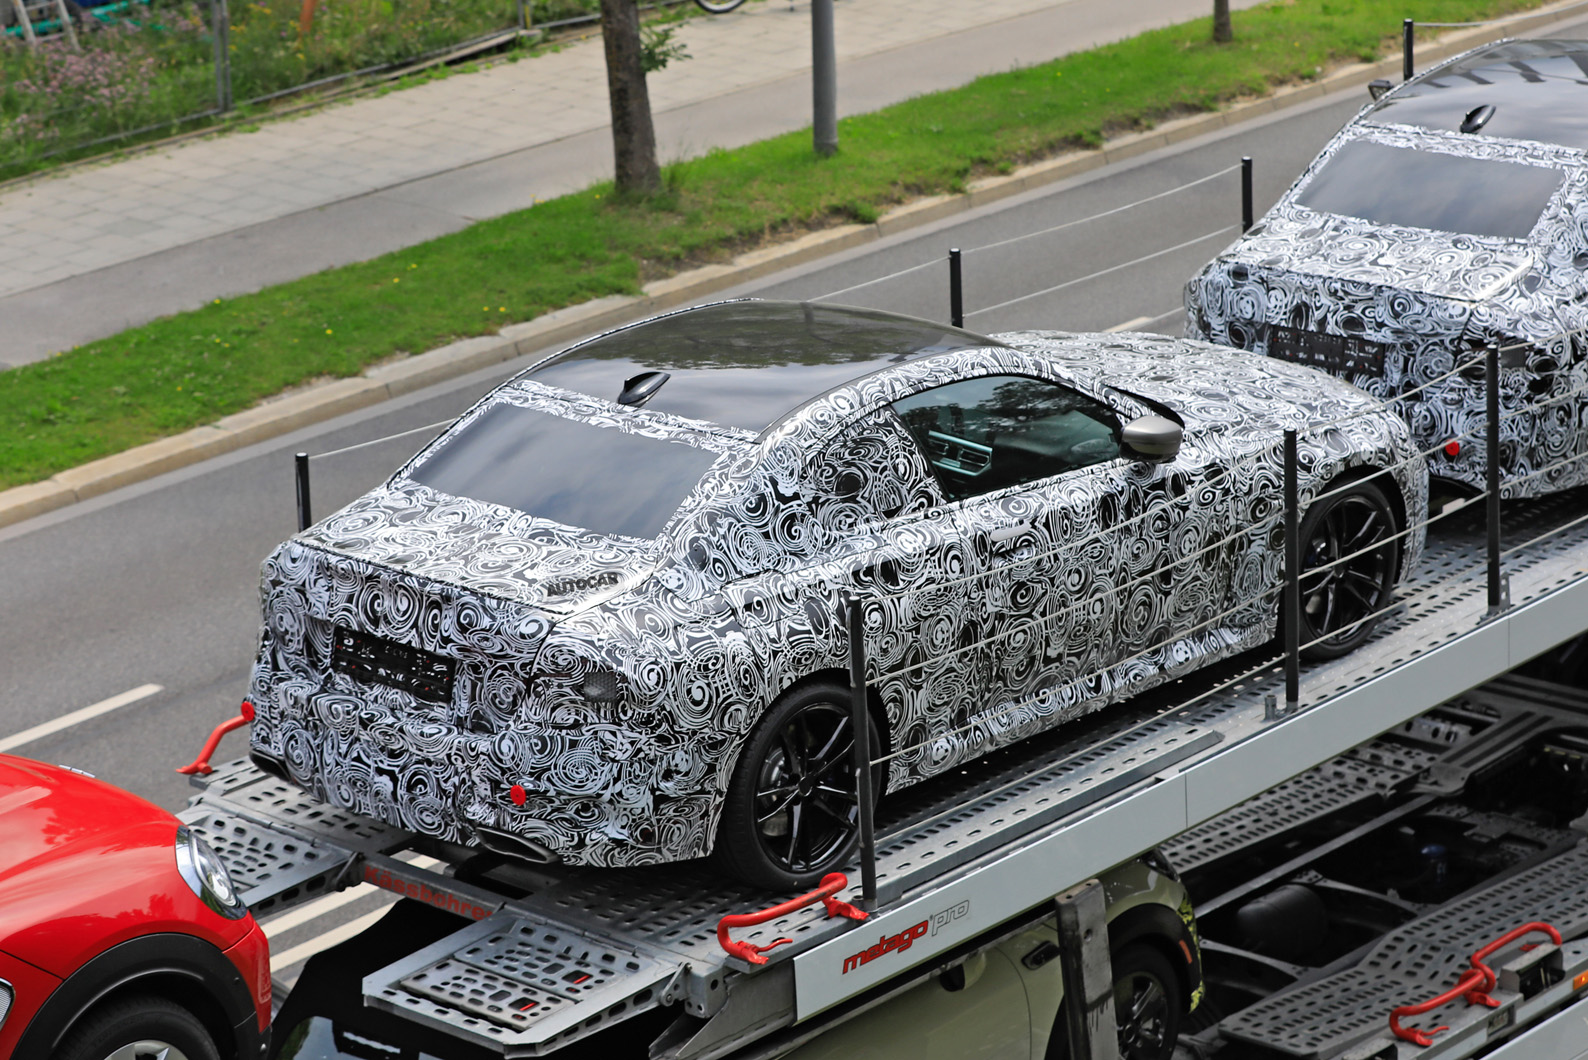 Bmw 2 Series Coupe Ramps Up For 2021 Launch In Winter Tests Autocar